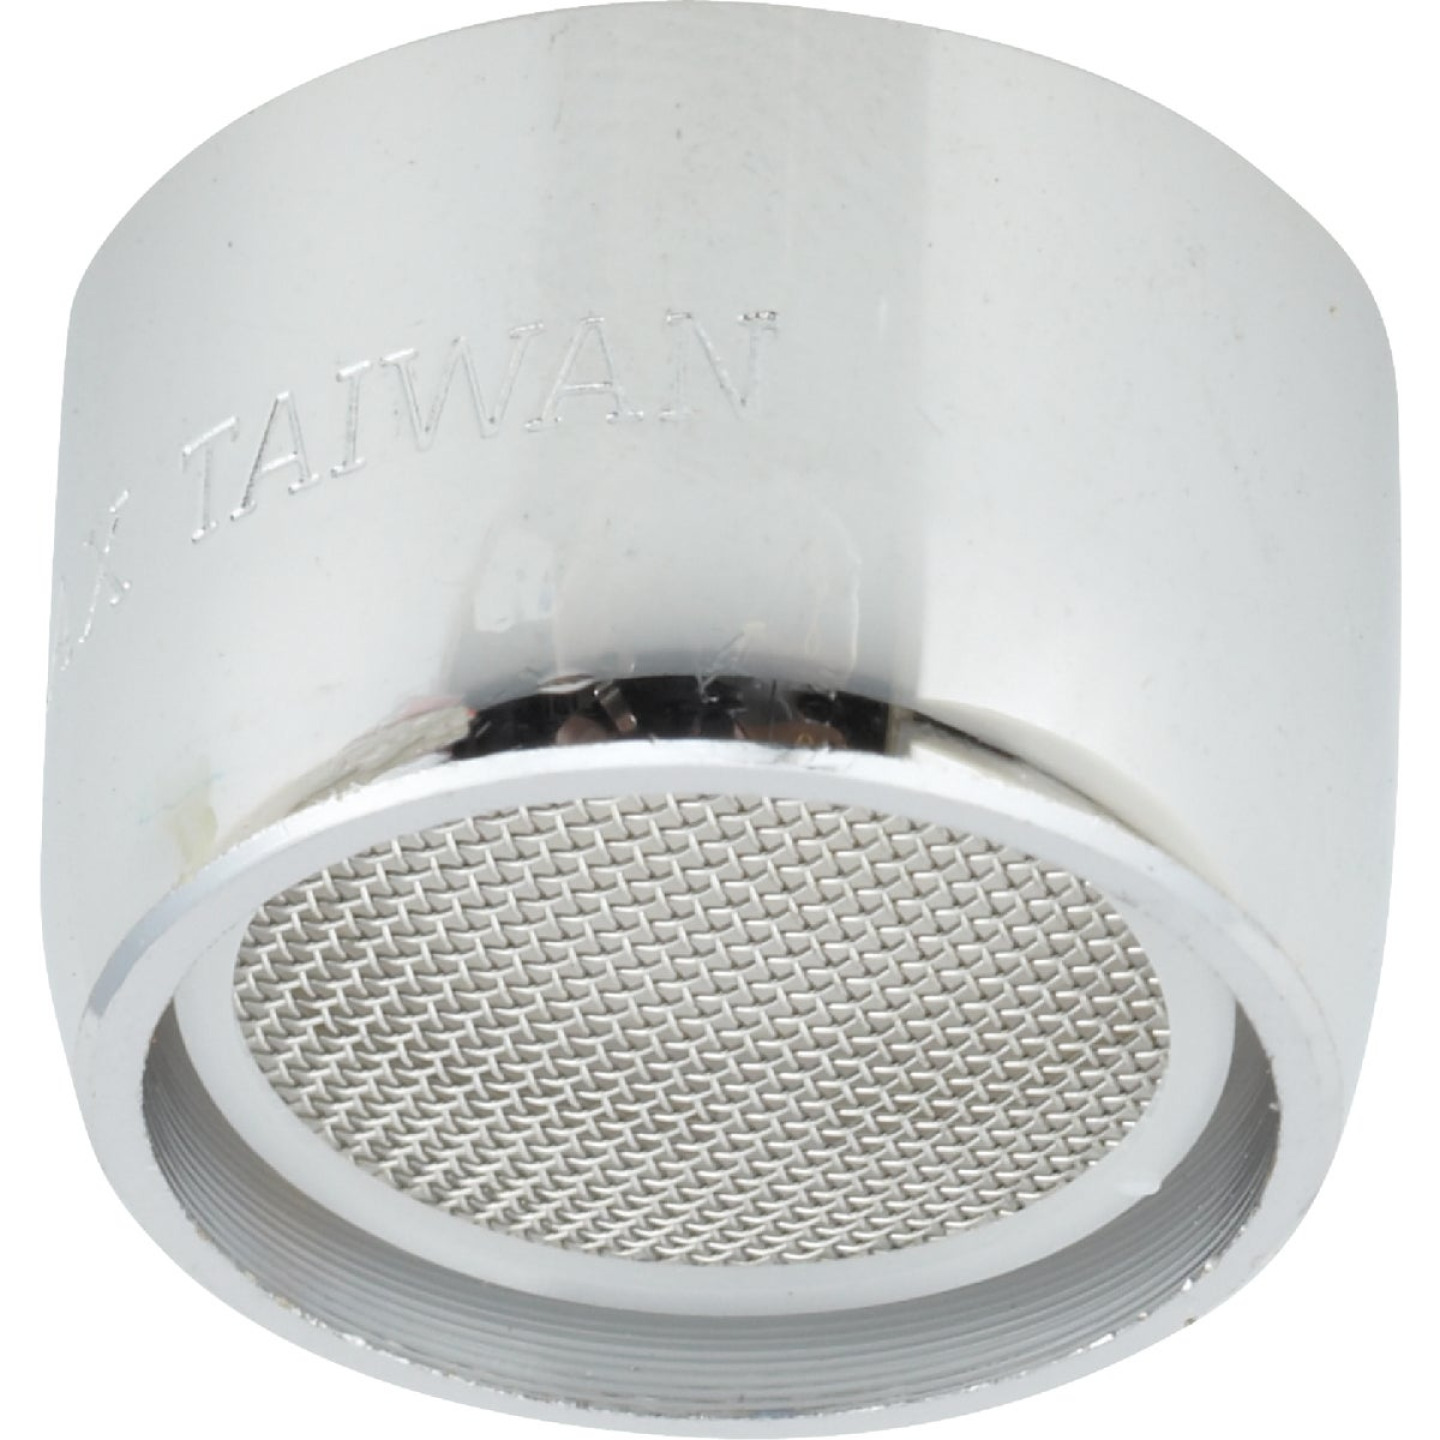 Do it 2.0 GPM Low Lead Water Saver Aerator, 55/64 In. Female Image 1